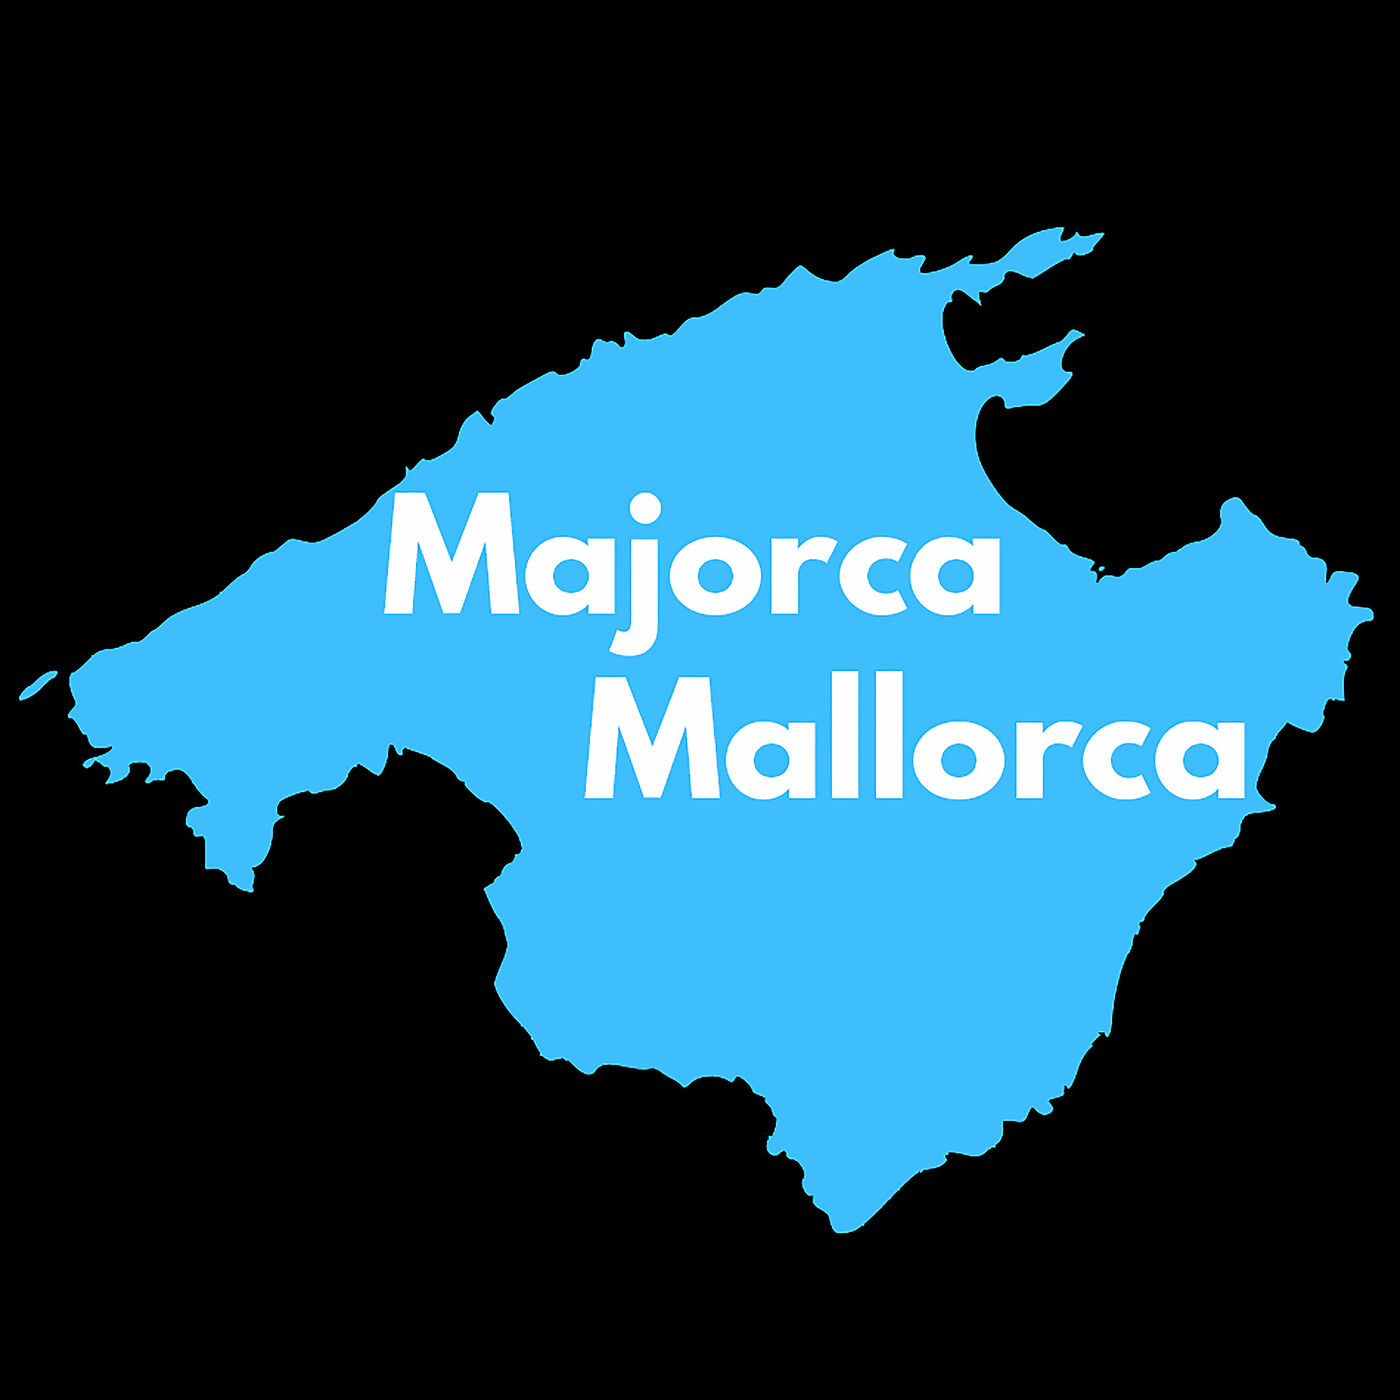 Majorca Mallorca, Episode 1, the Microscopic Elephant in the Room.